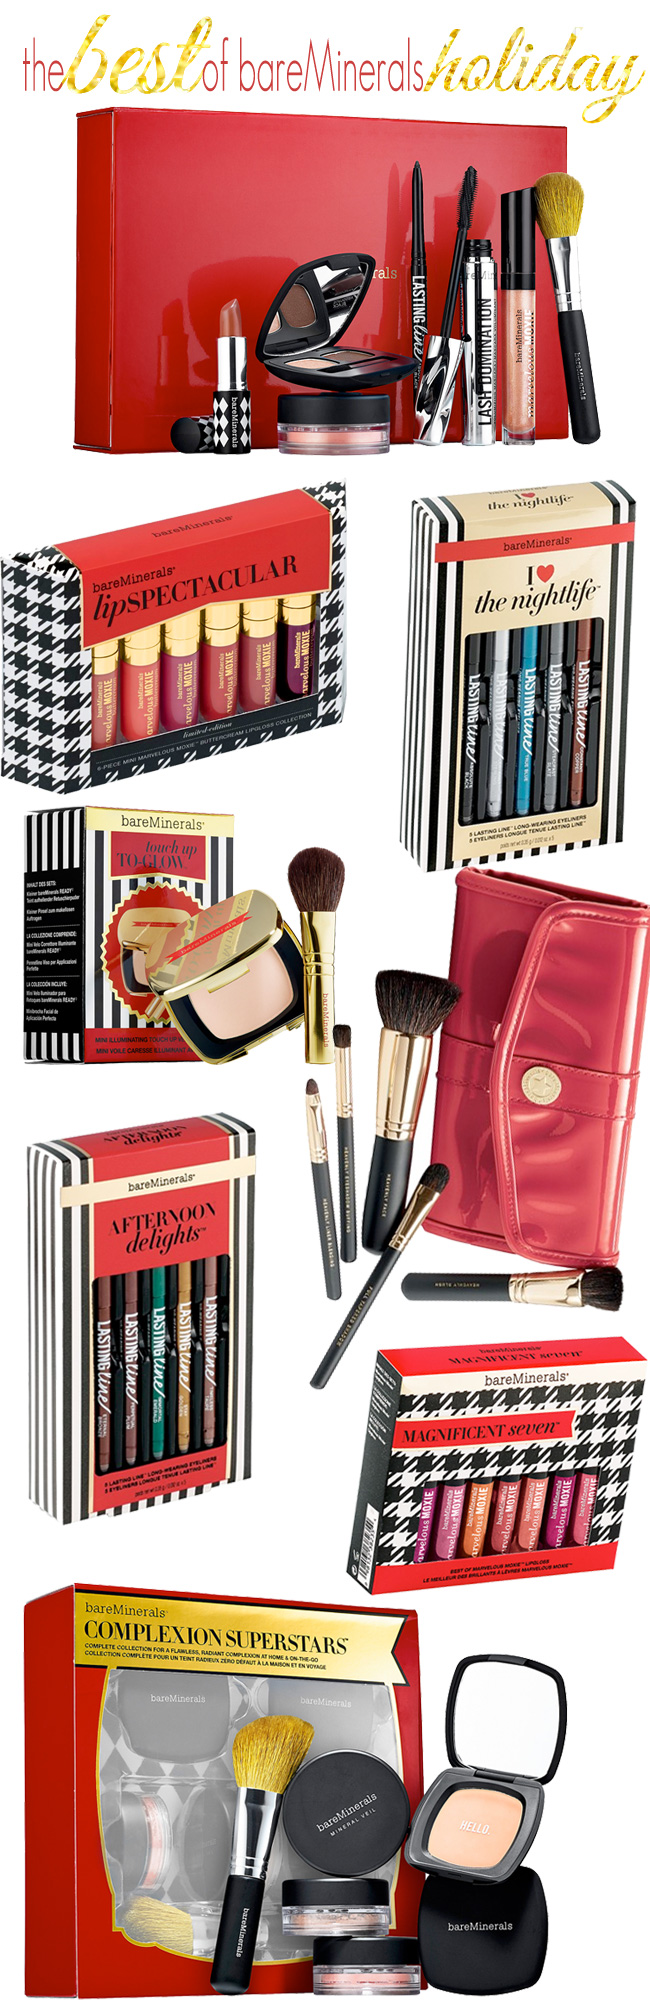 The best of bareMinerals beauty gifts for the holidays!